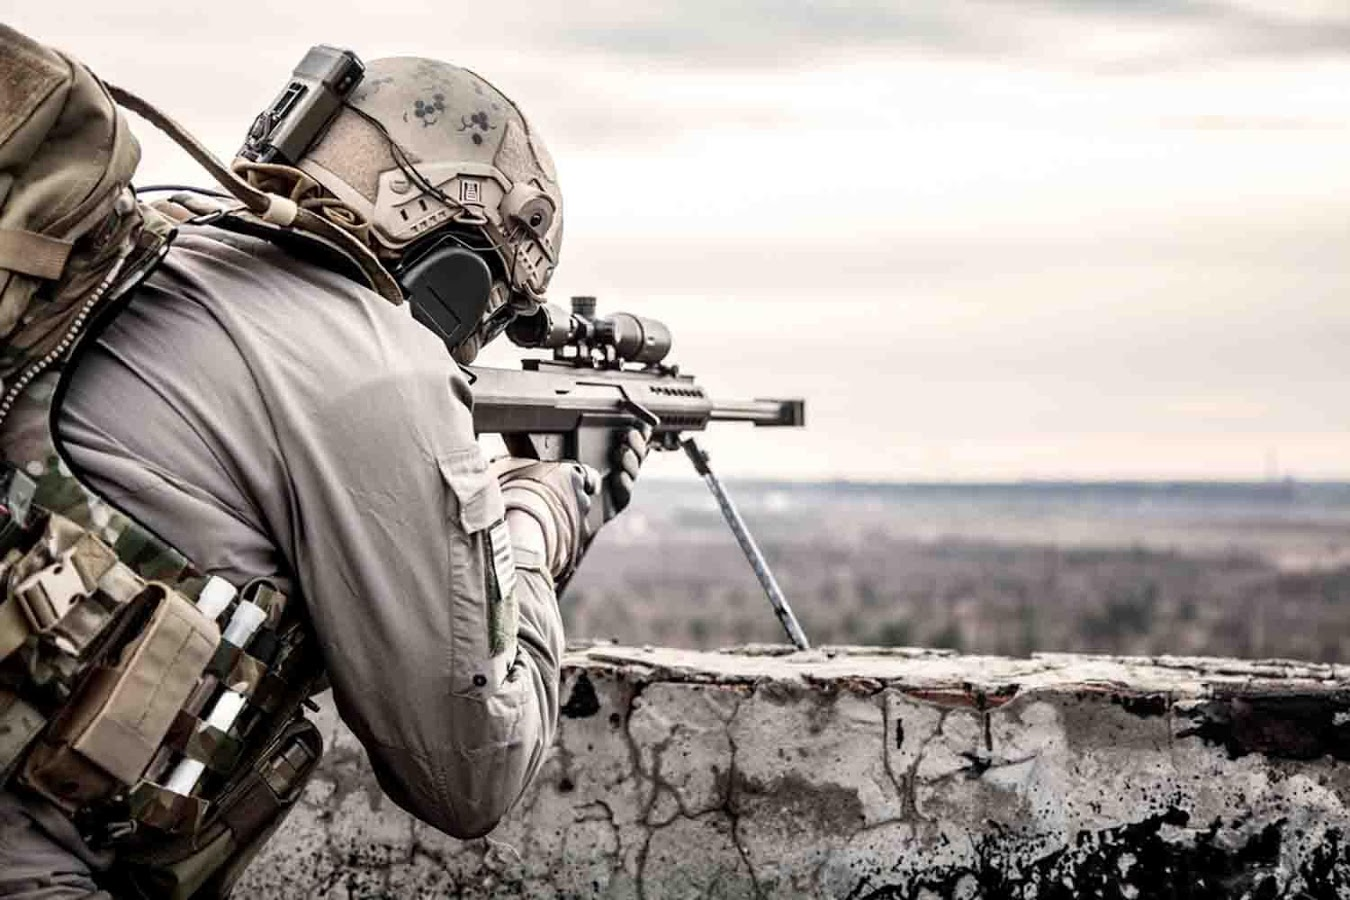 Free Download Military Backgrounds Wallpaper Best Cool Wallpaper Hd 1350x900 For Your Desktop Mobile Tablet Explore 77 Cool Army Backgrounds Us Army Wallpaper Backgrounds Army Wallpaper Background Free Us Army Wallpapers